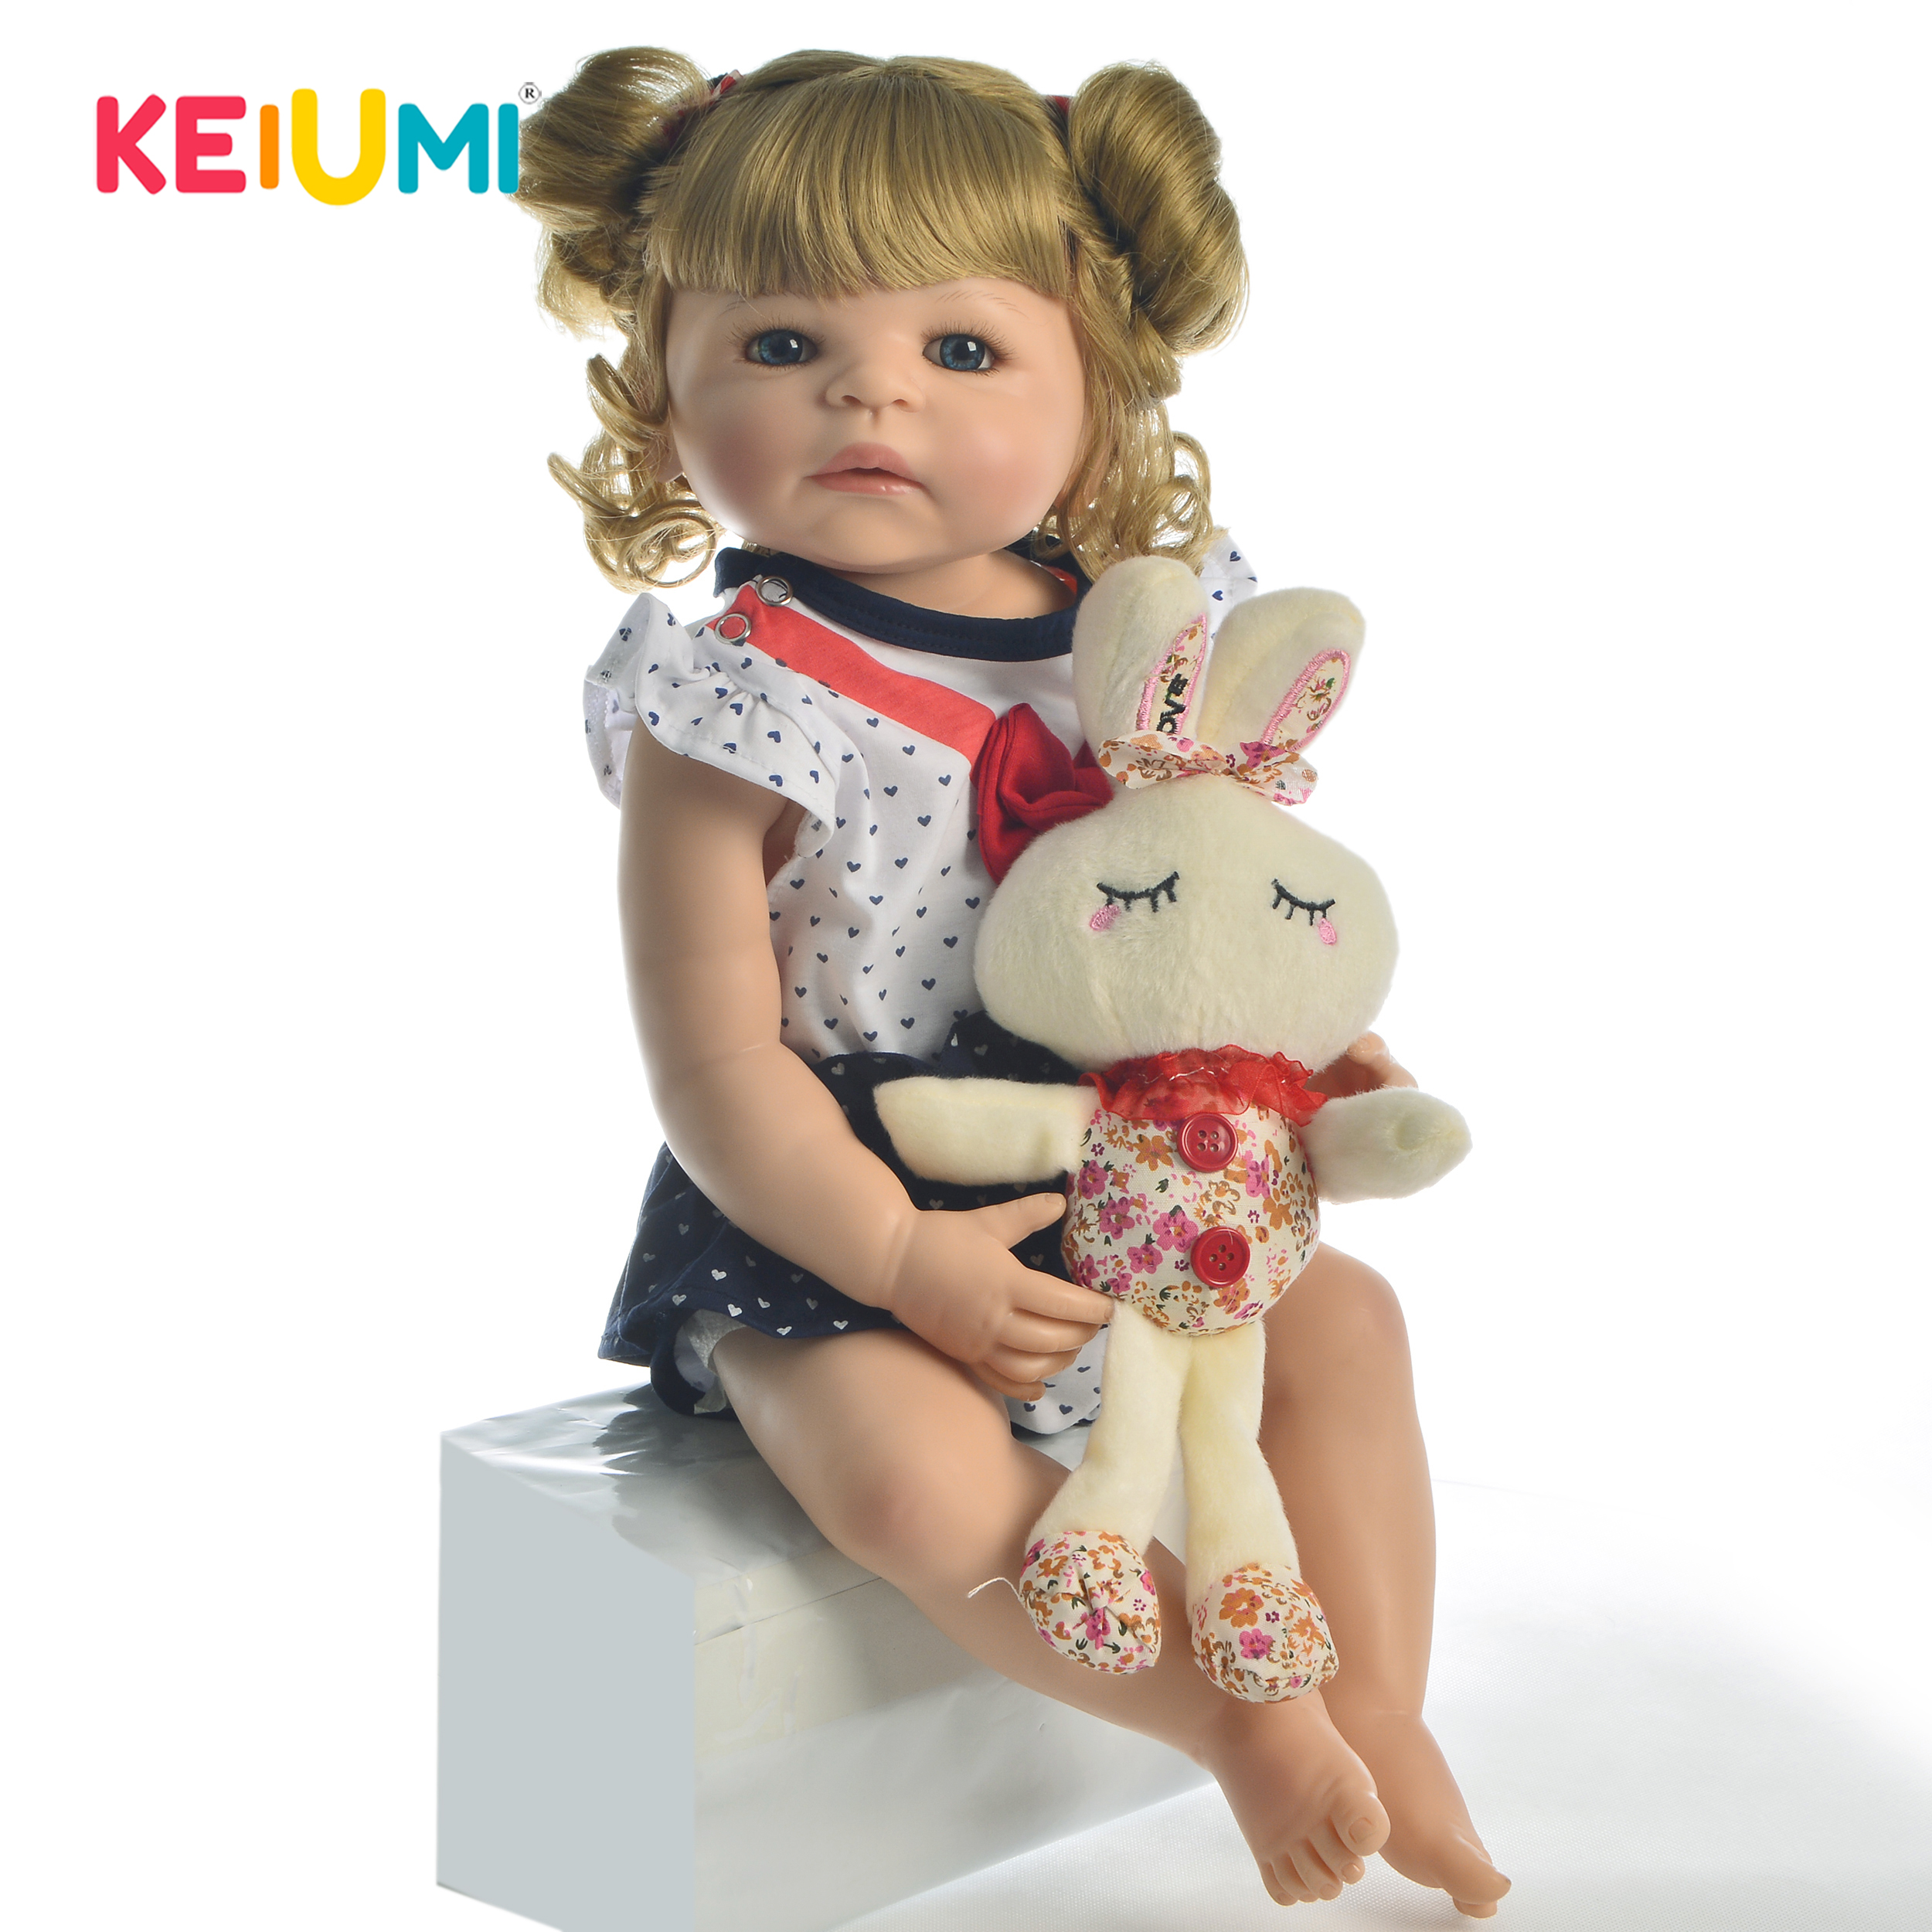 KEIUMI Hot Sale Realistic Reborn Doll Full Silicone 55 cm Real Looking Fake Baby Toy For